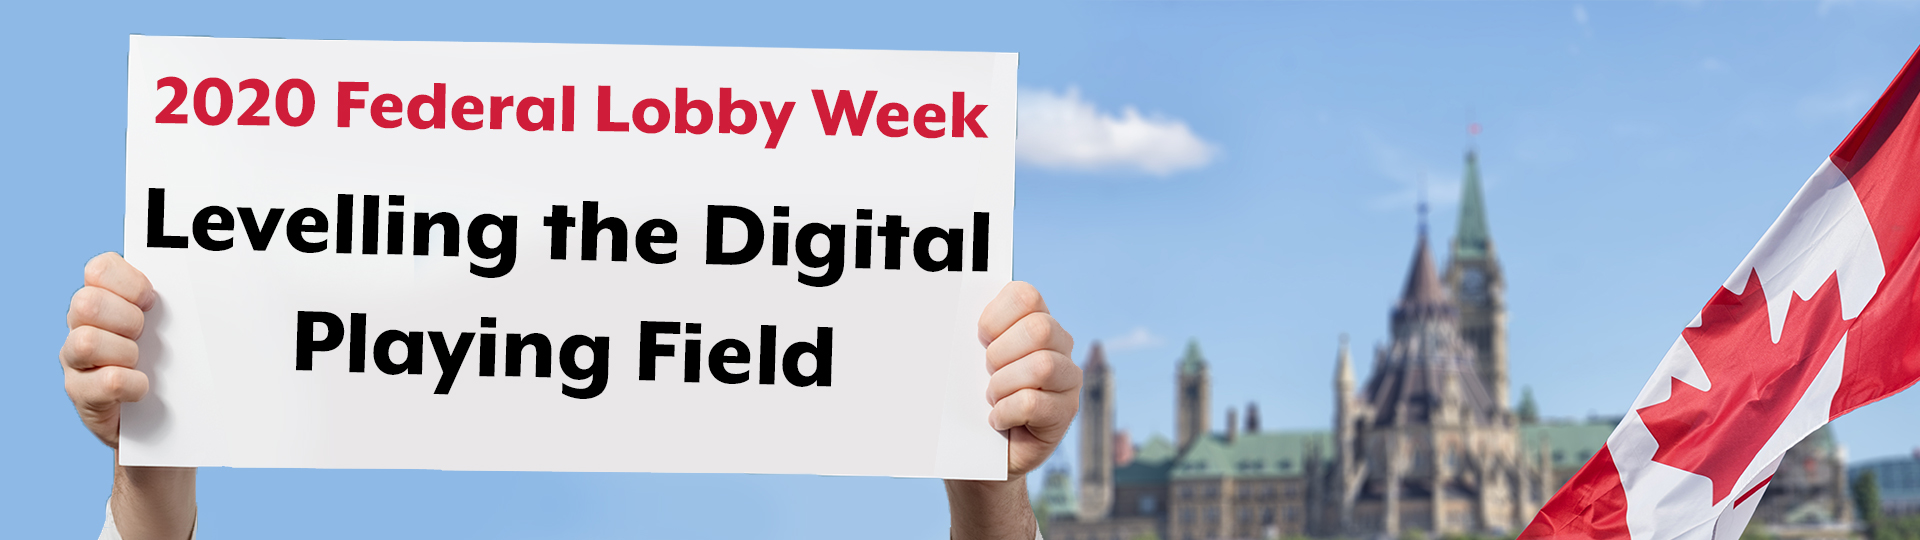 2020 Federal Lobby Week - Levelling the Digital Playing Field